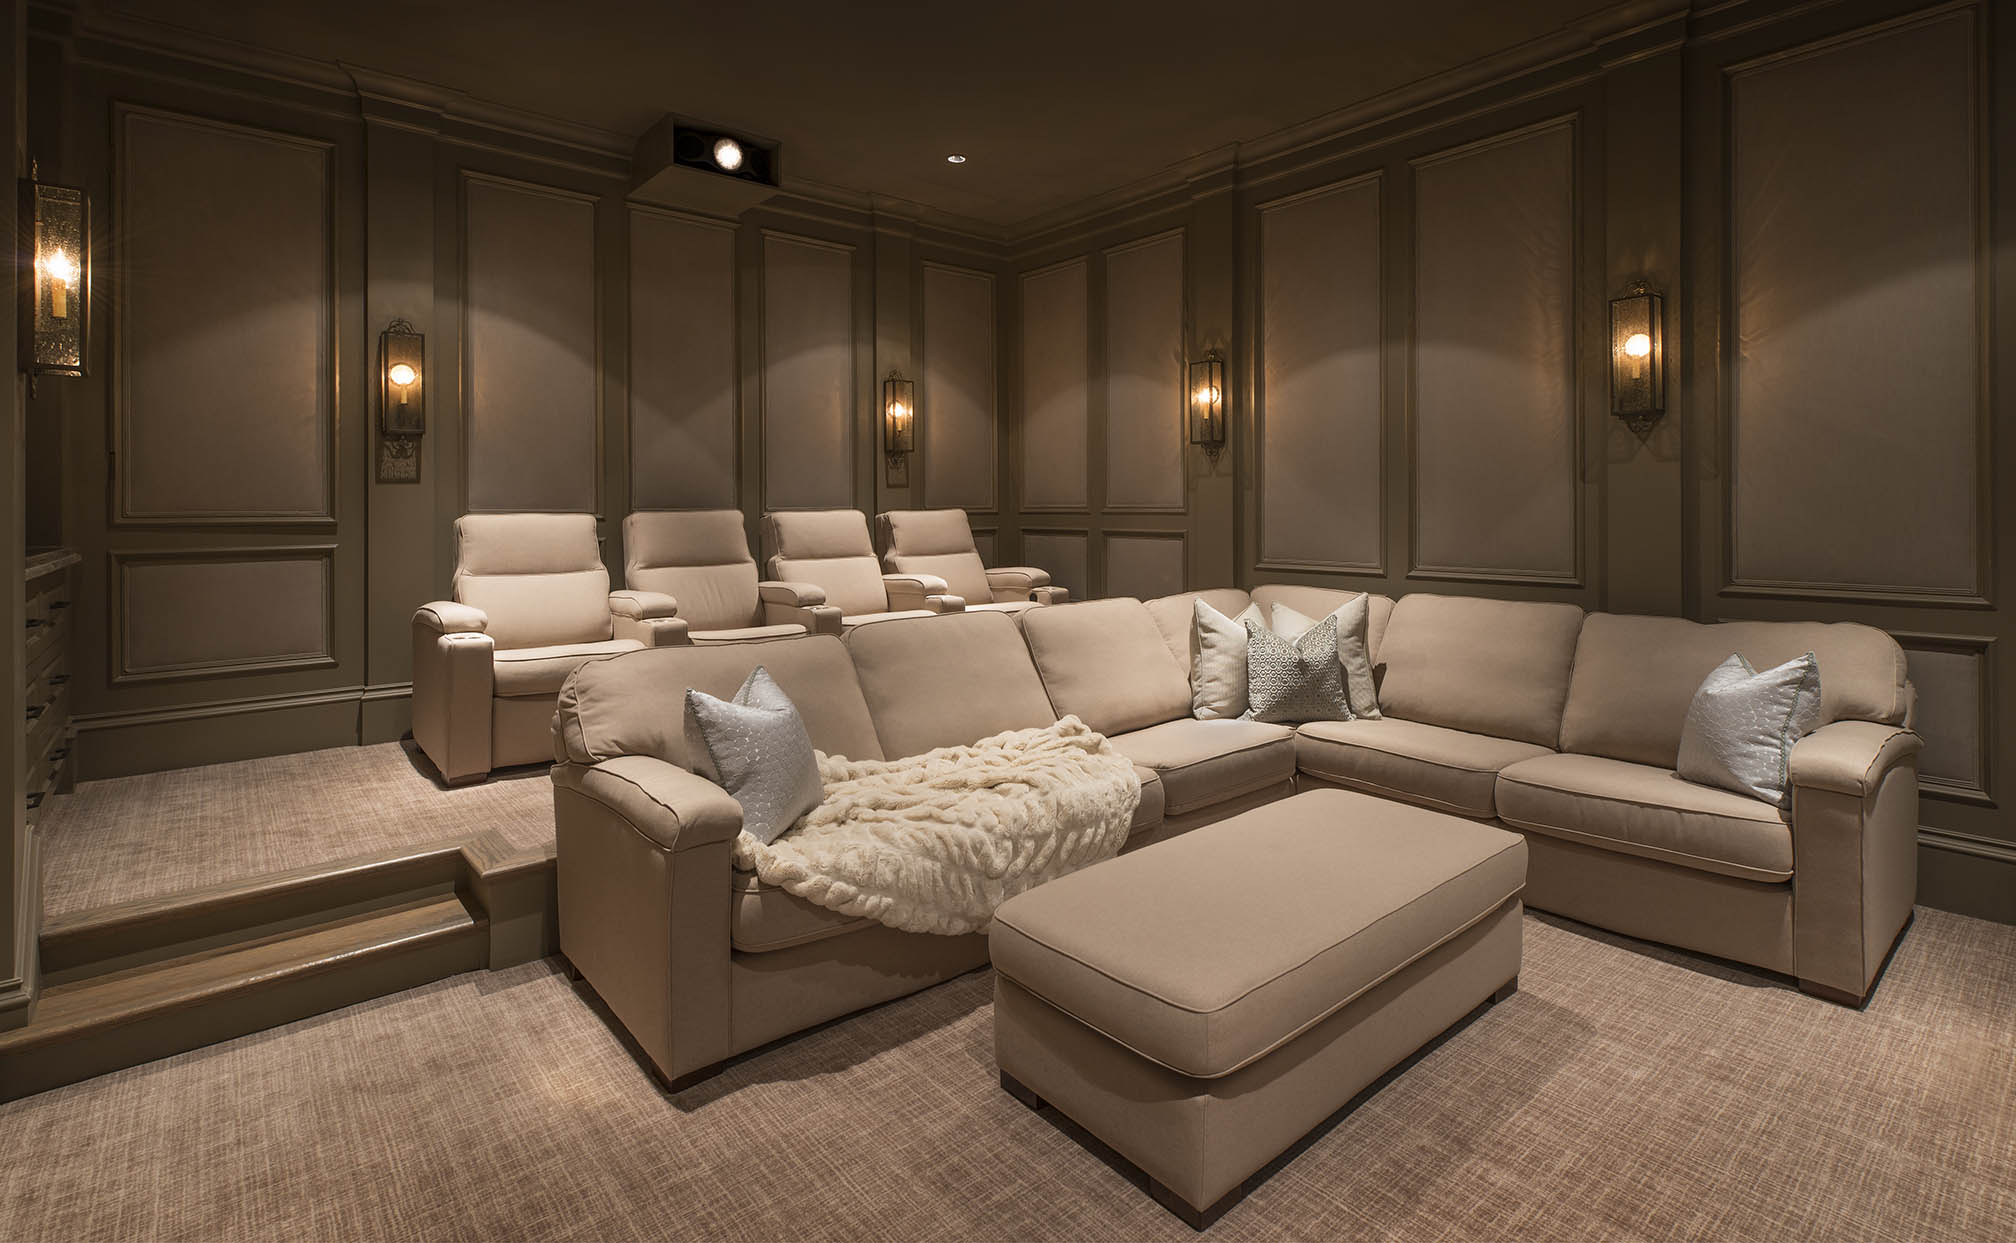 Home Theater Room Vaquero Smart Homes Featuring Control4 Media Rooms